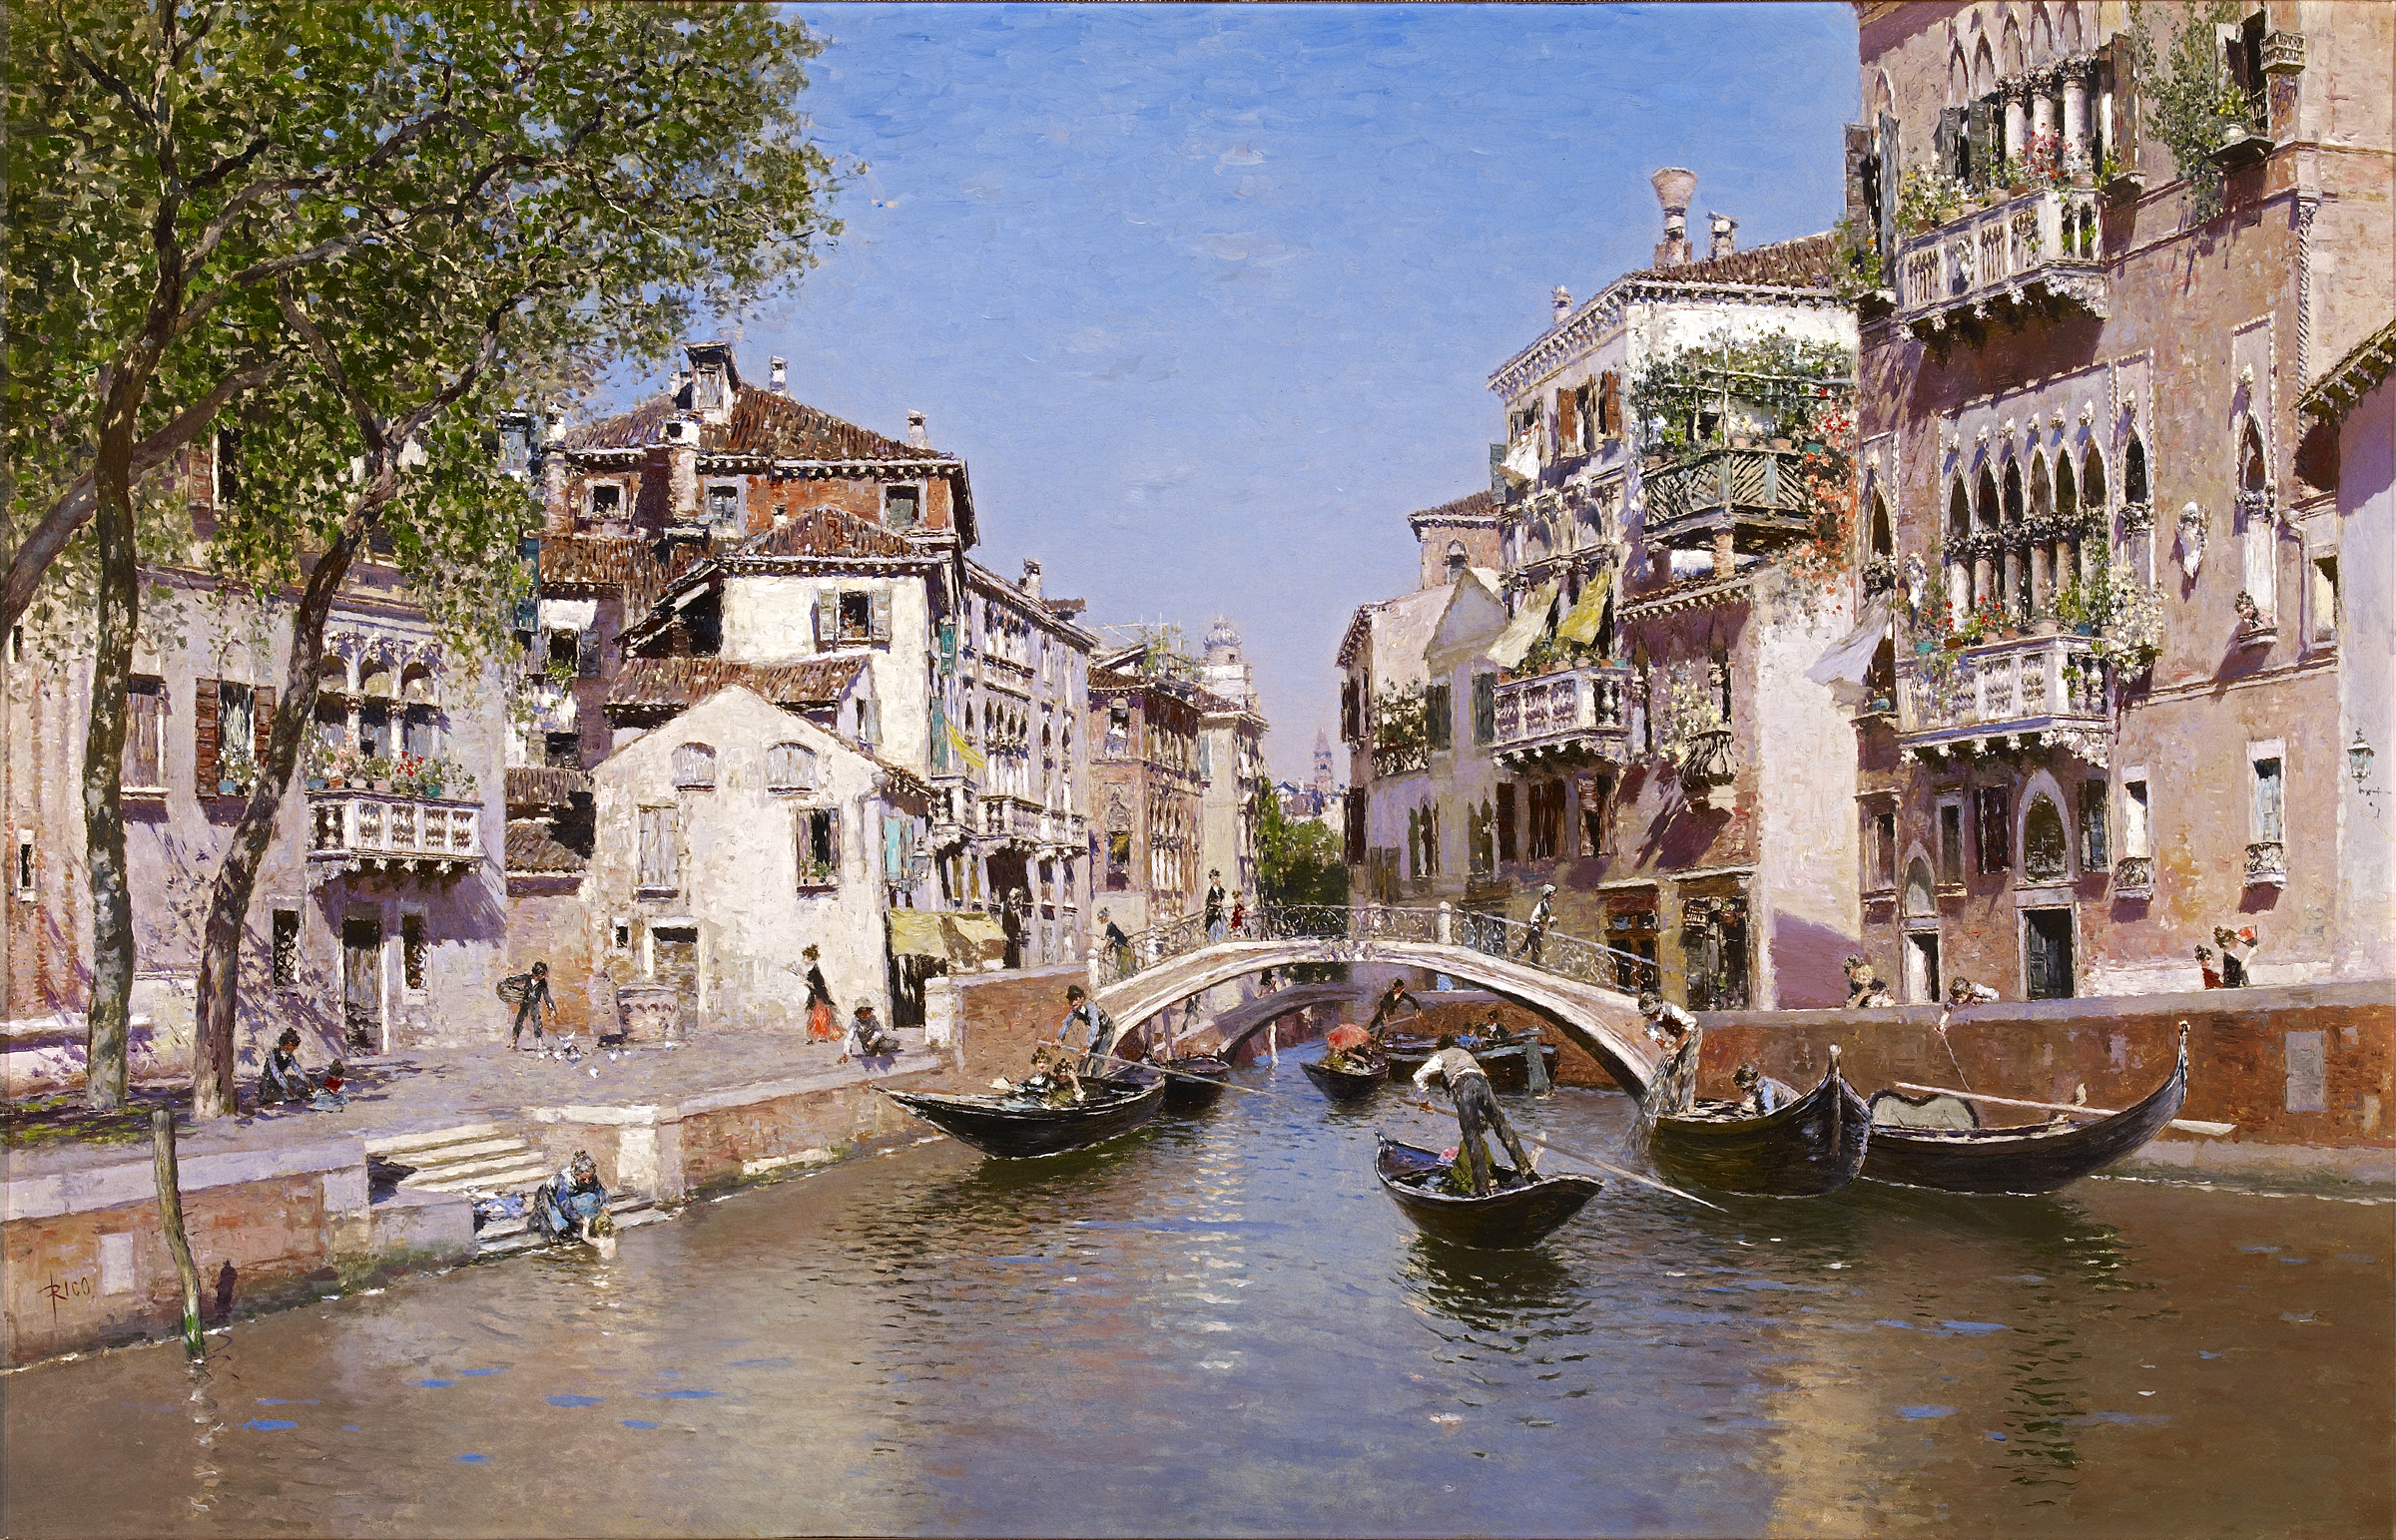 Martín Rico y Ortega (Spanish, 1833-1908), Rio San Trovaso, Venice, c. 1903. Oil on canvas. Meadows Museum, SMU, Dallas. Museum purchase with funds from The Meadows Foundation, MM.07.01. Photo by Michael Bodycomb.